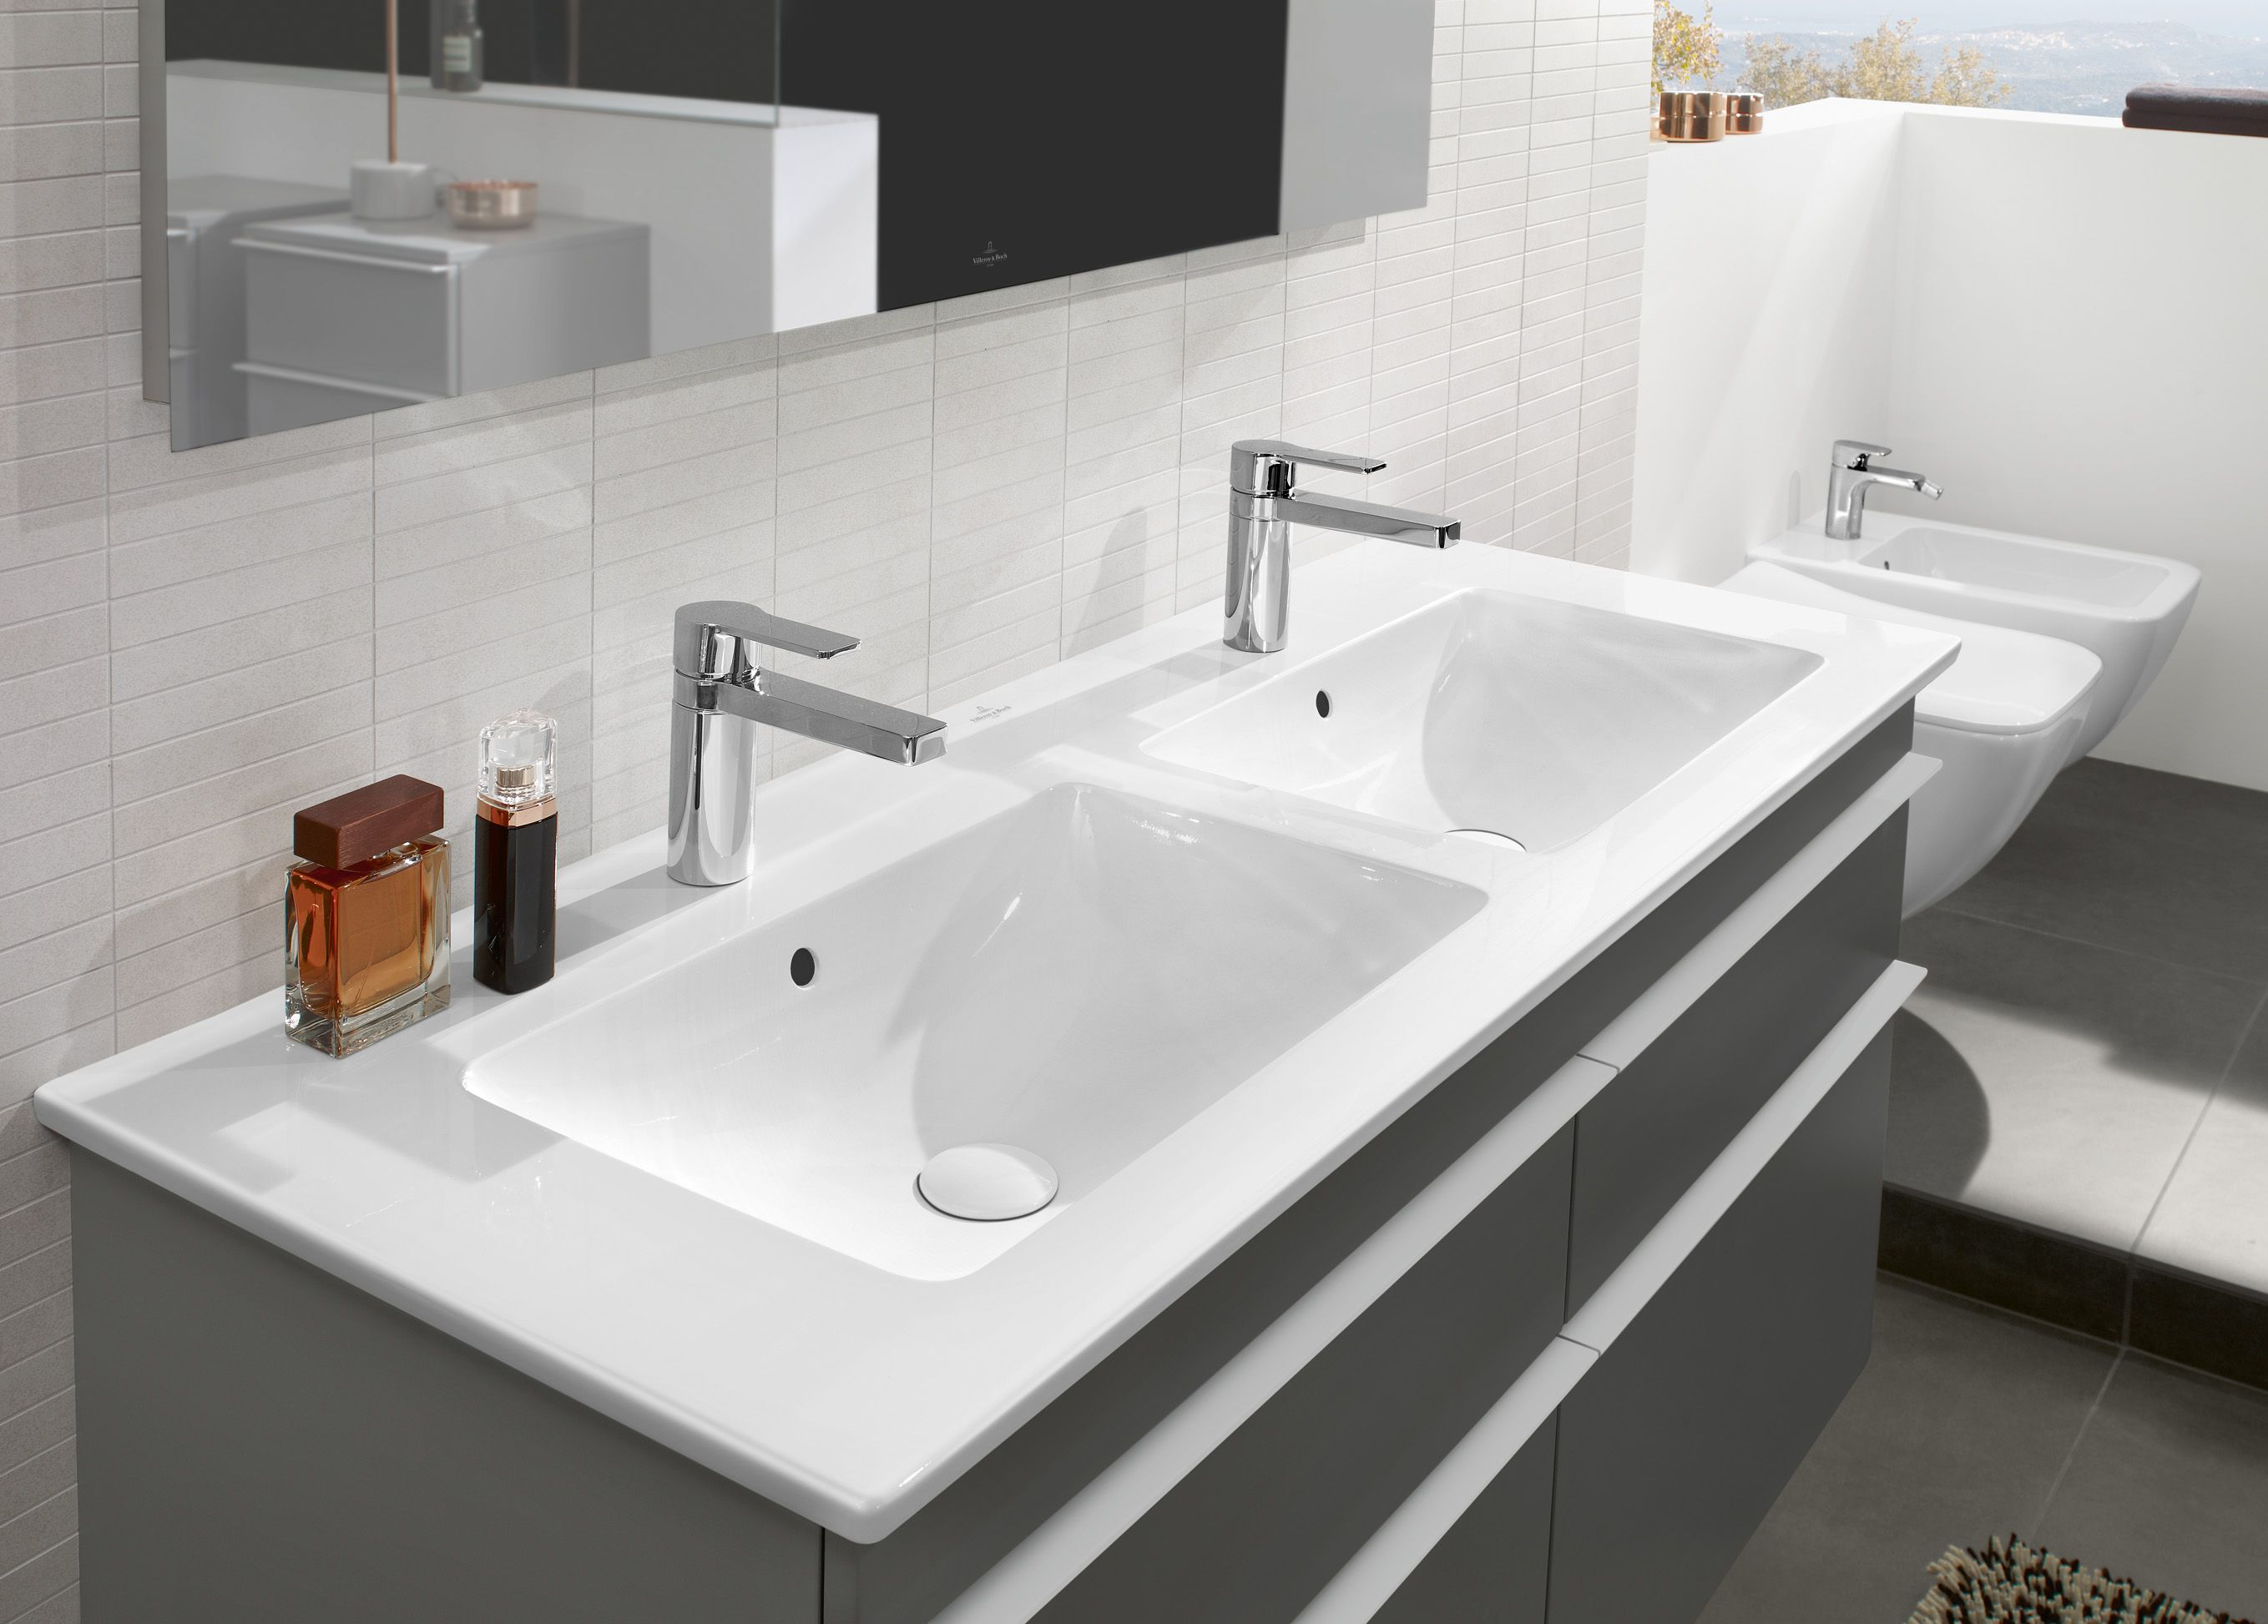 Venticello! Learn more on great Villeroy & Boch bathroom